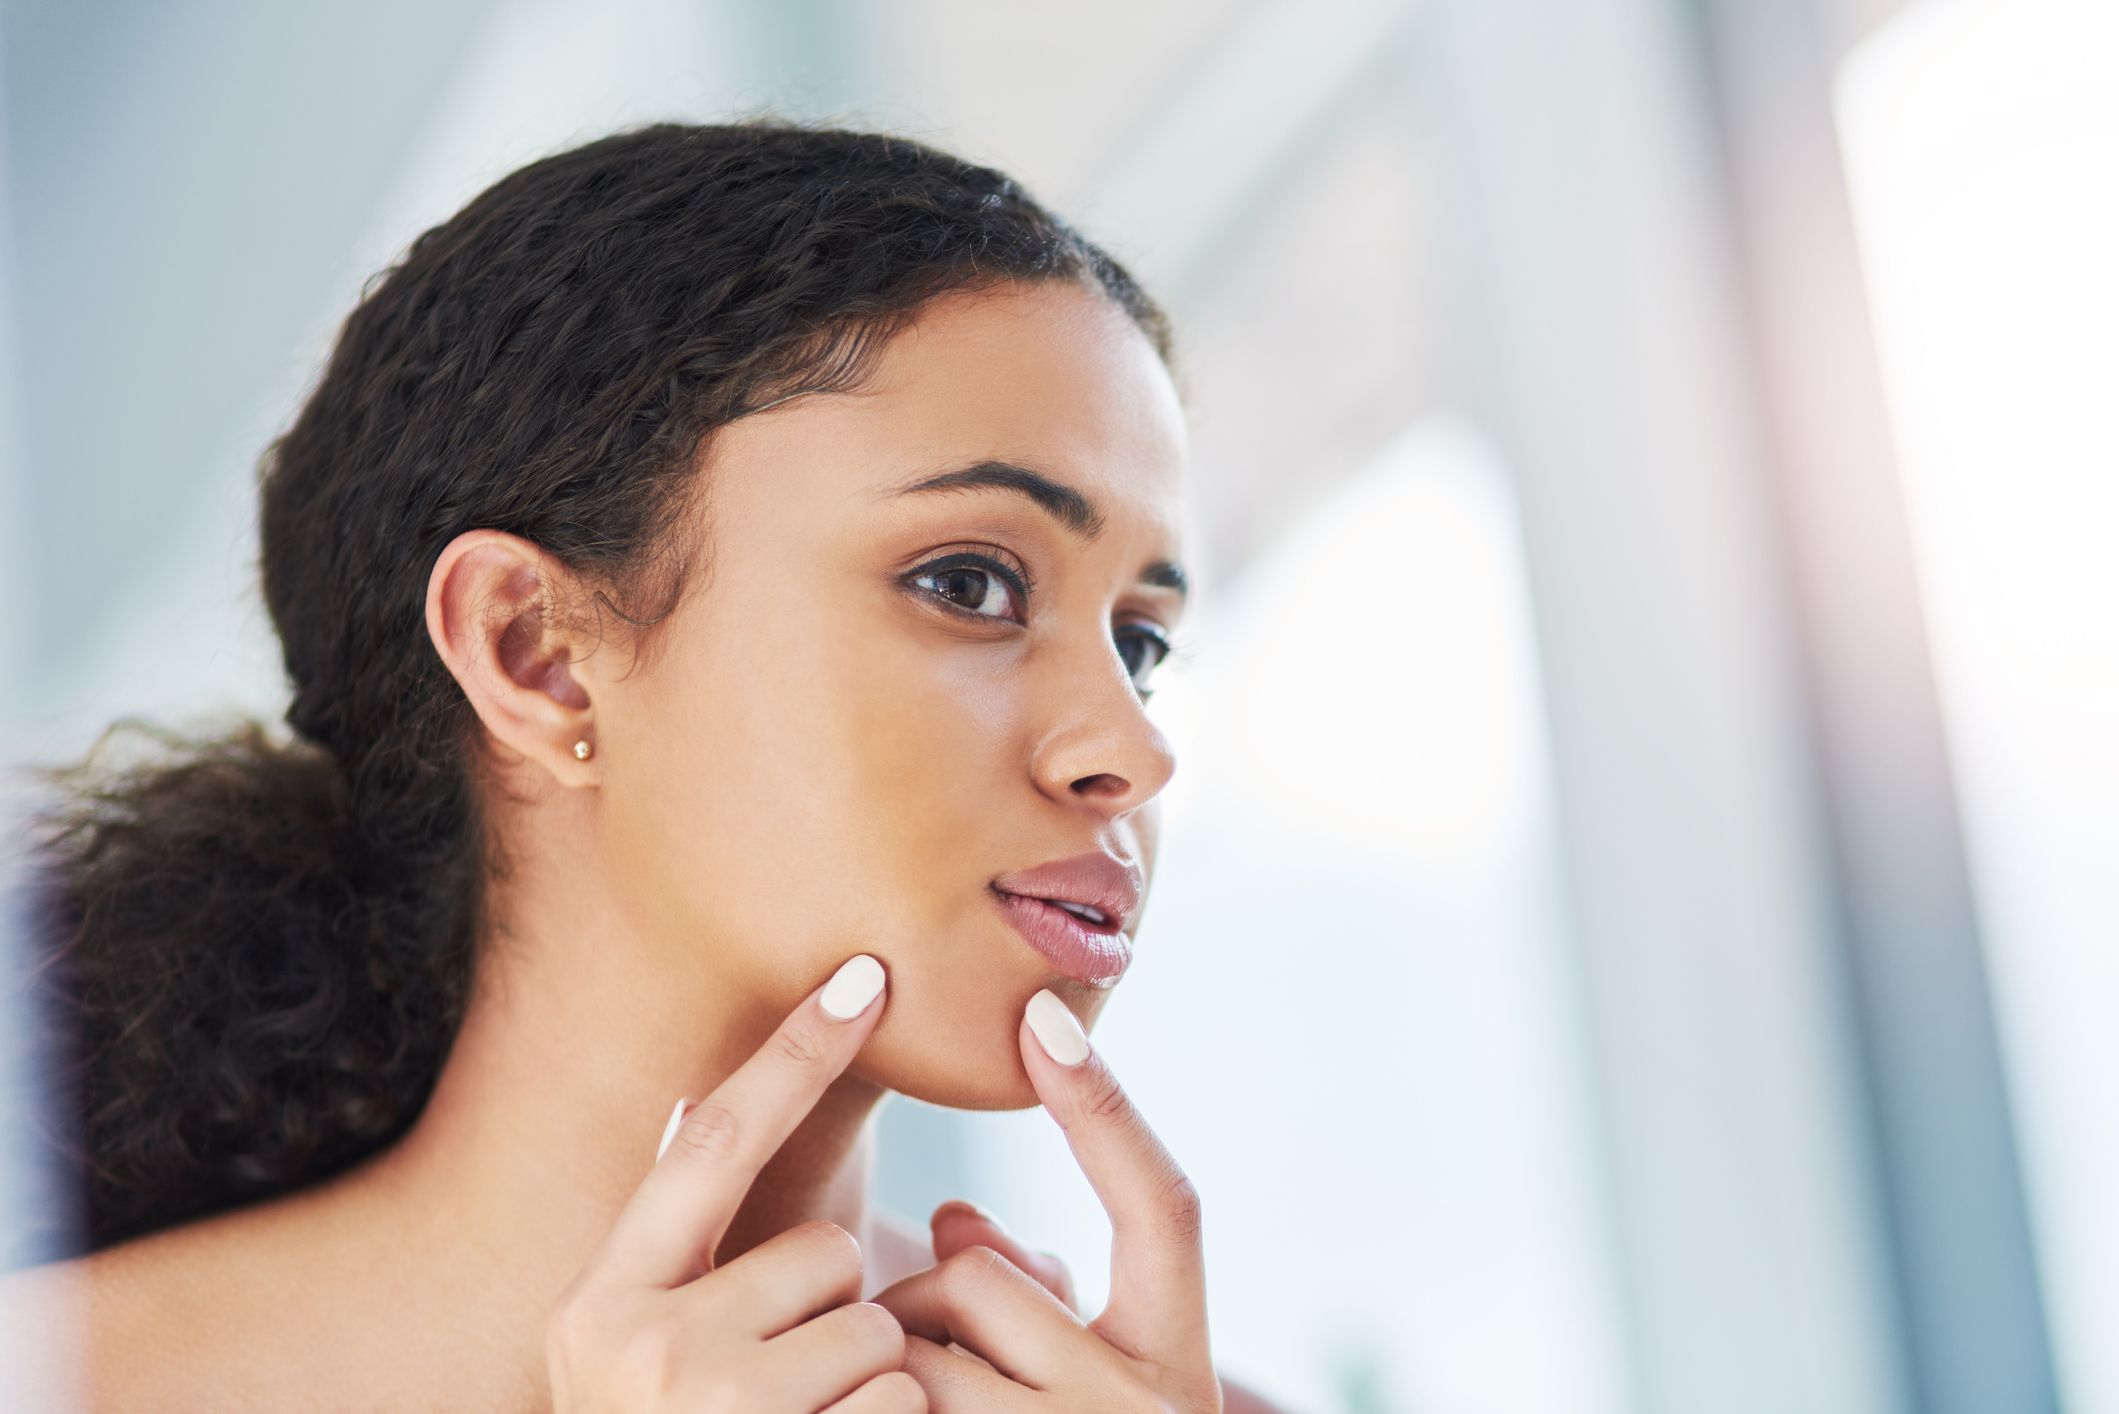 101 Beauty Tips to Give You the Clearest Skin of Your Life